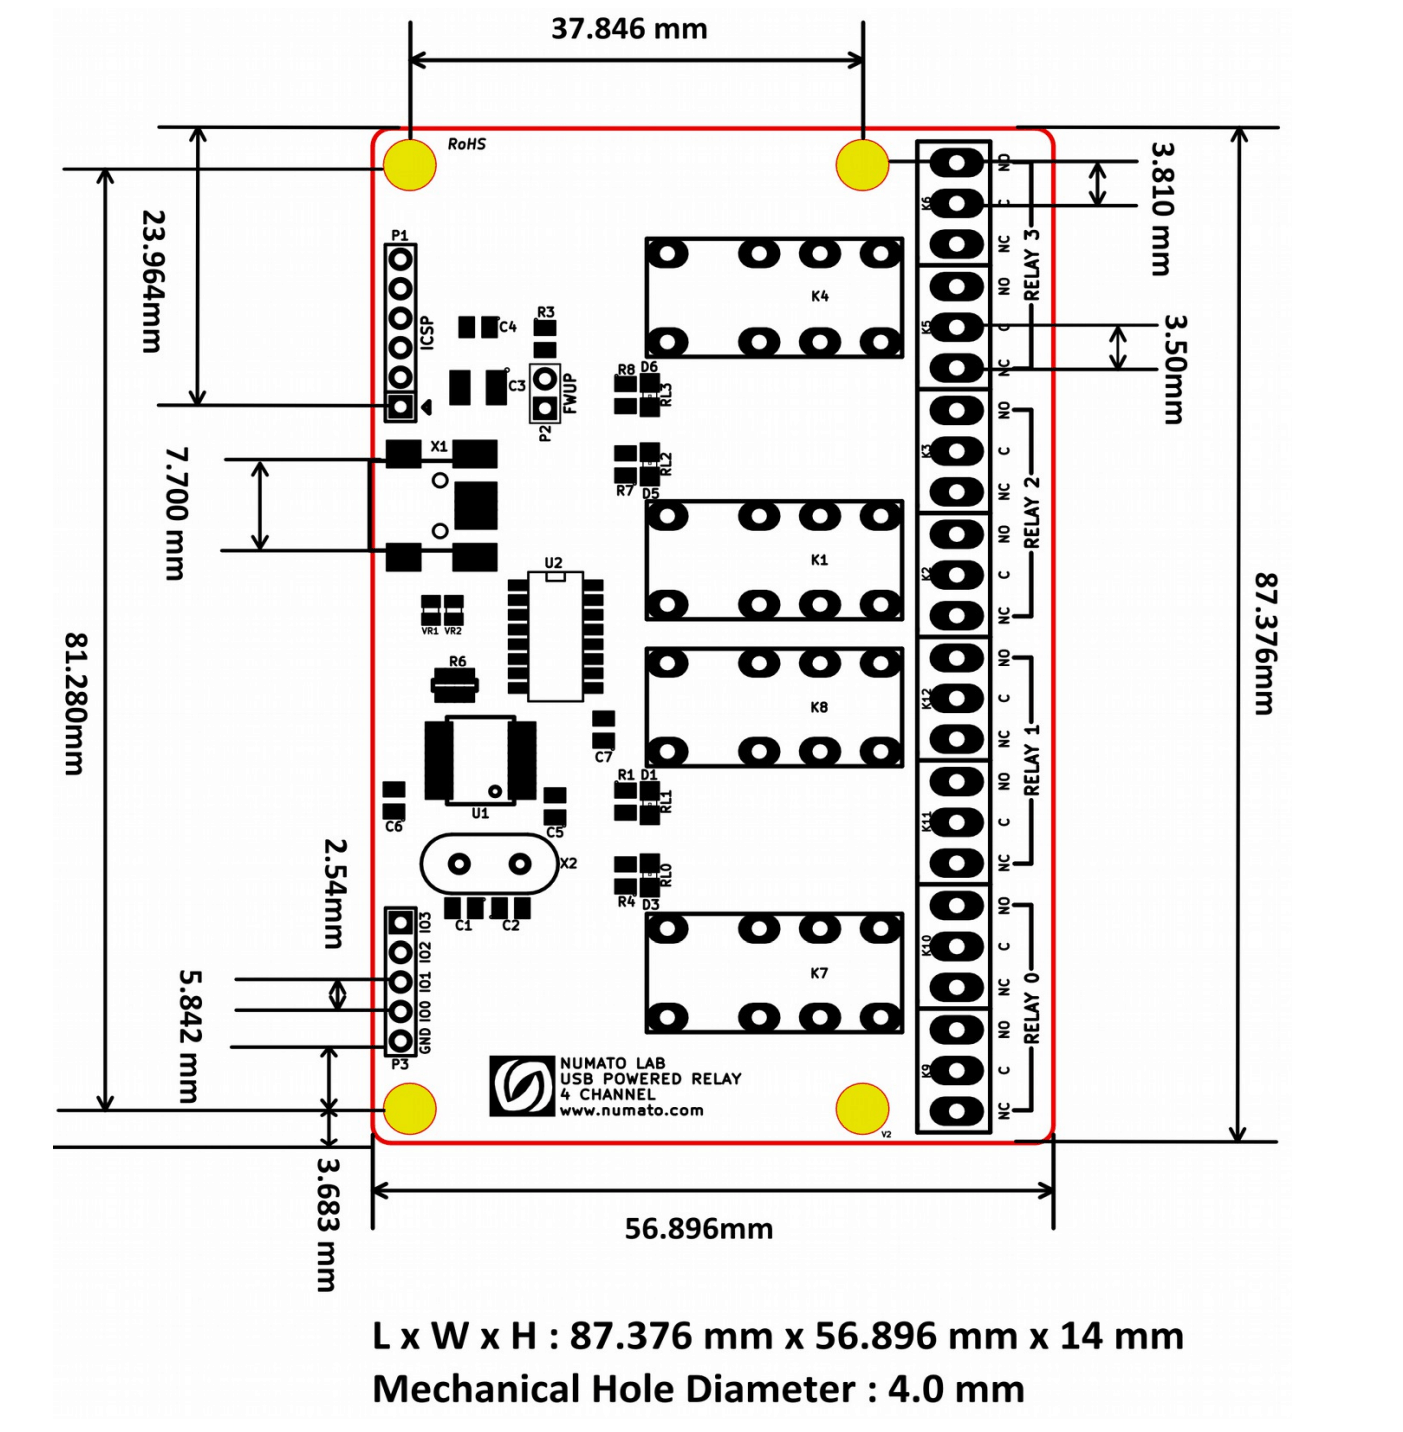 4 Channel Usb Powered Relay Module Numato Lab Help Center Diagram In Addition Switch 5 Pin Wiring Besides Voltage 8mechanical Dimensions